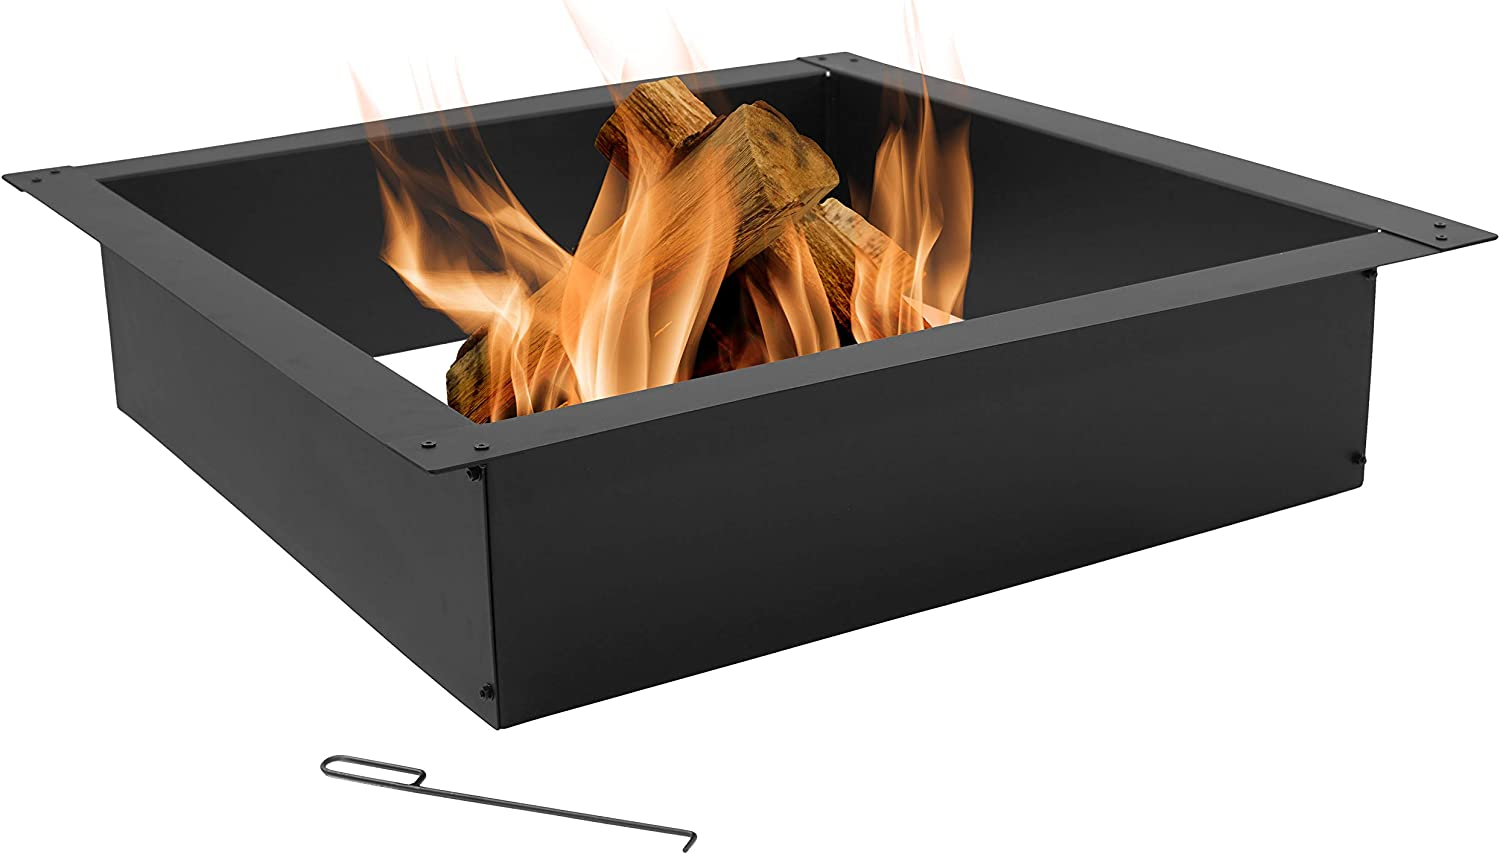 Amazon Com Sunnydaze Fire Pit Ring Outdoor Large Square Insert Diy Firepit Rim Liner Above Or In Ground Heavy Duty 2 0mm Steel 42 Inch Square Outside X 36 Inch Square Inside